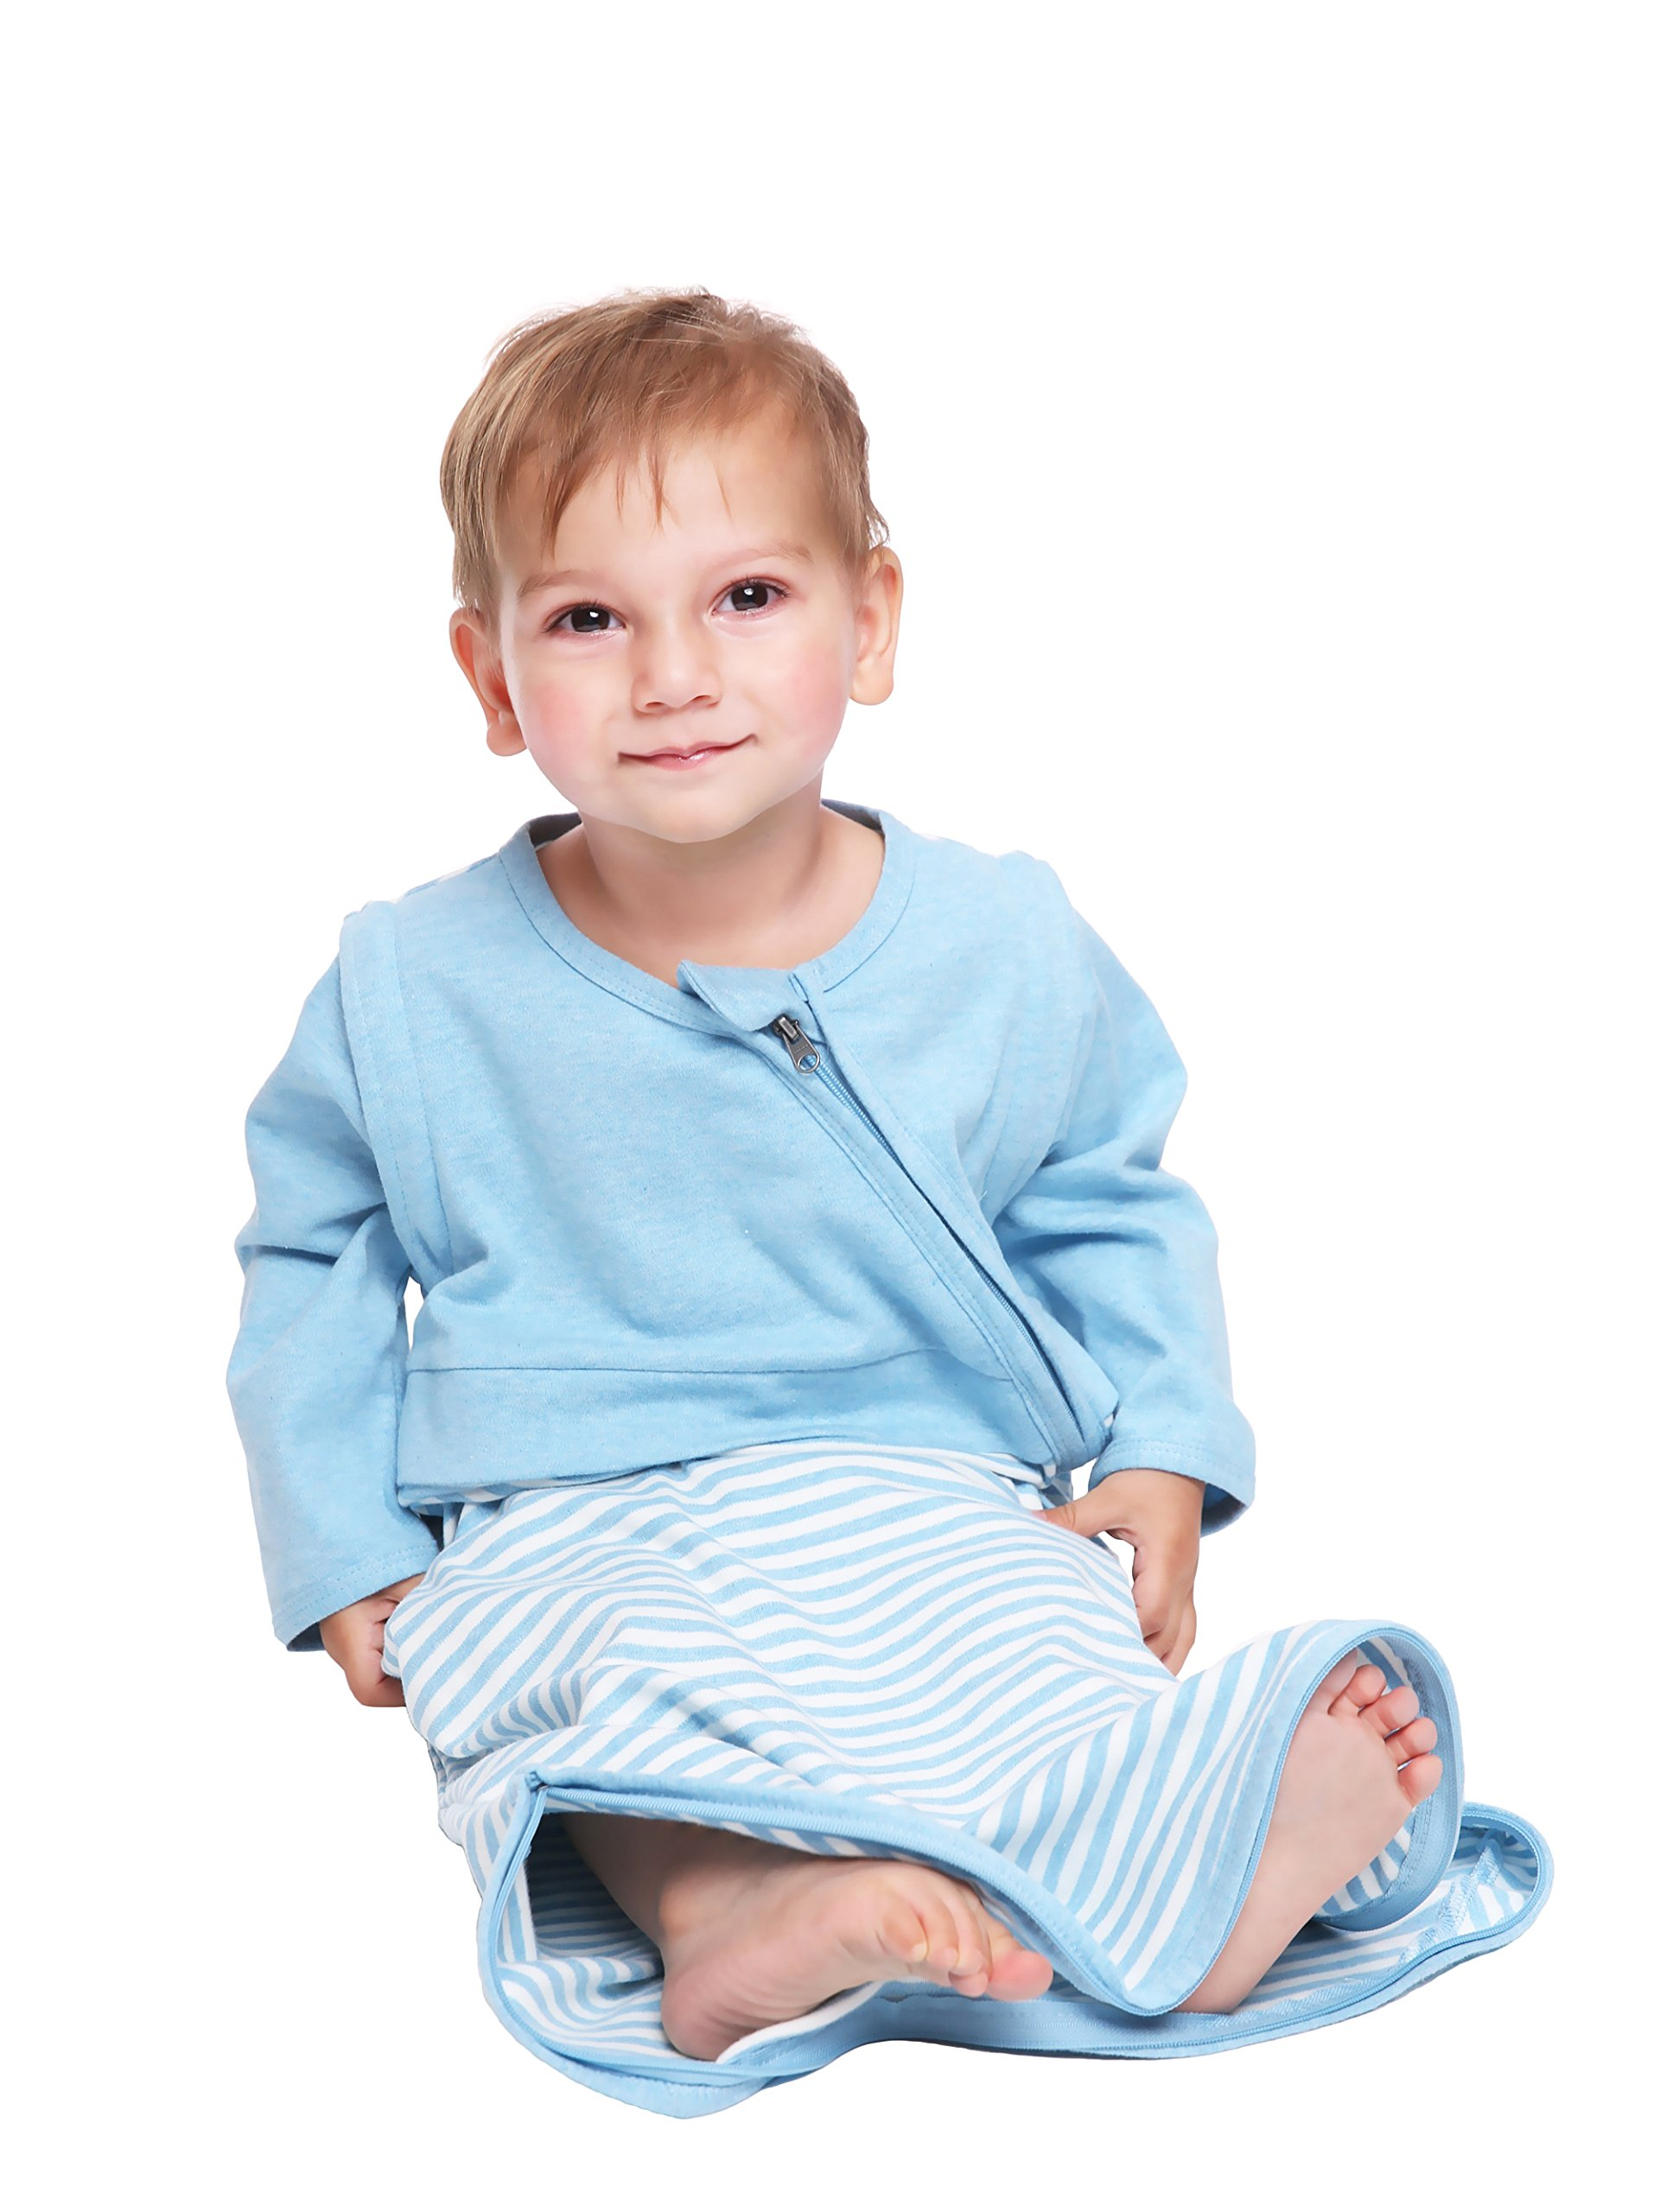 LETTAS Baby Boys and Girls 100% Cotton Stripe Removable Sleeve Sleeping Bag 0.5 Tog - Soft Wearable Blanket Blue (2T-3T )